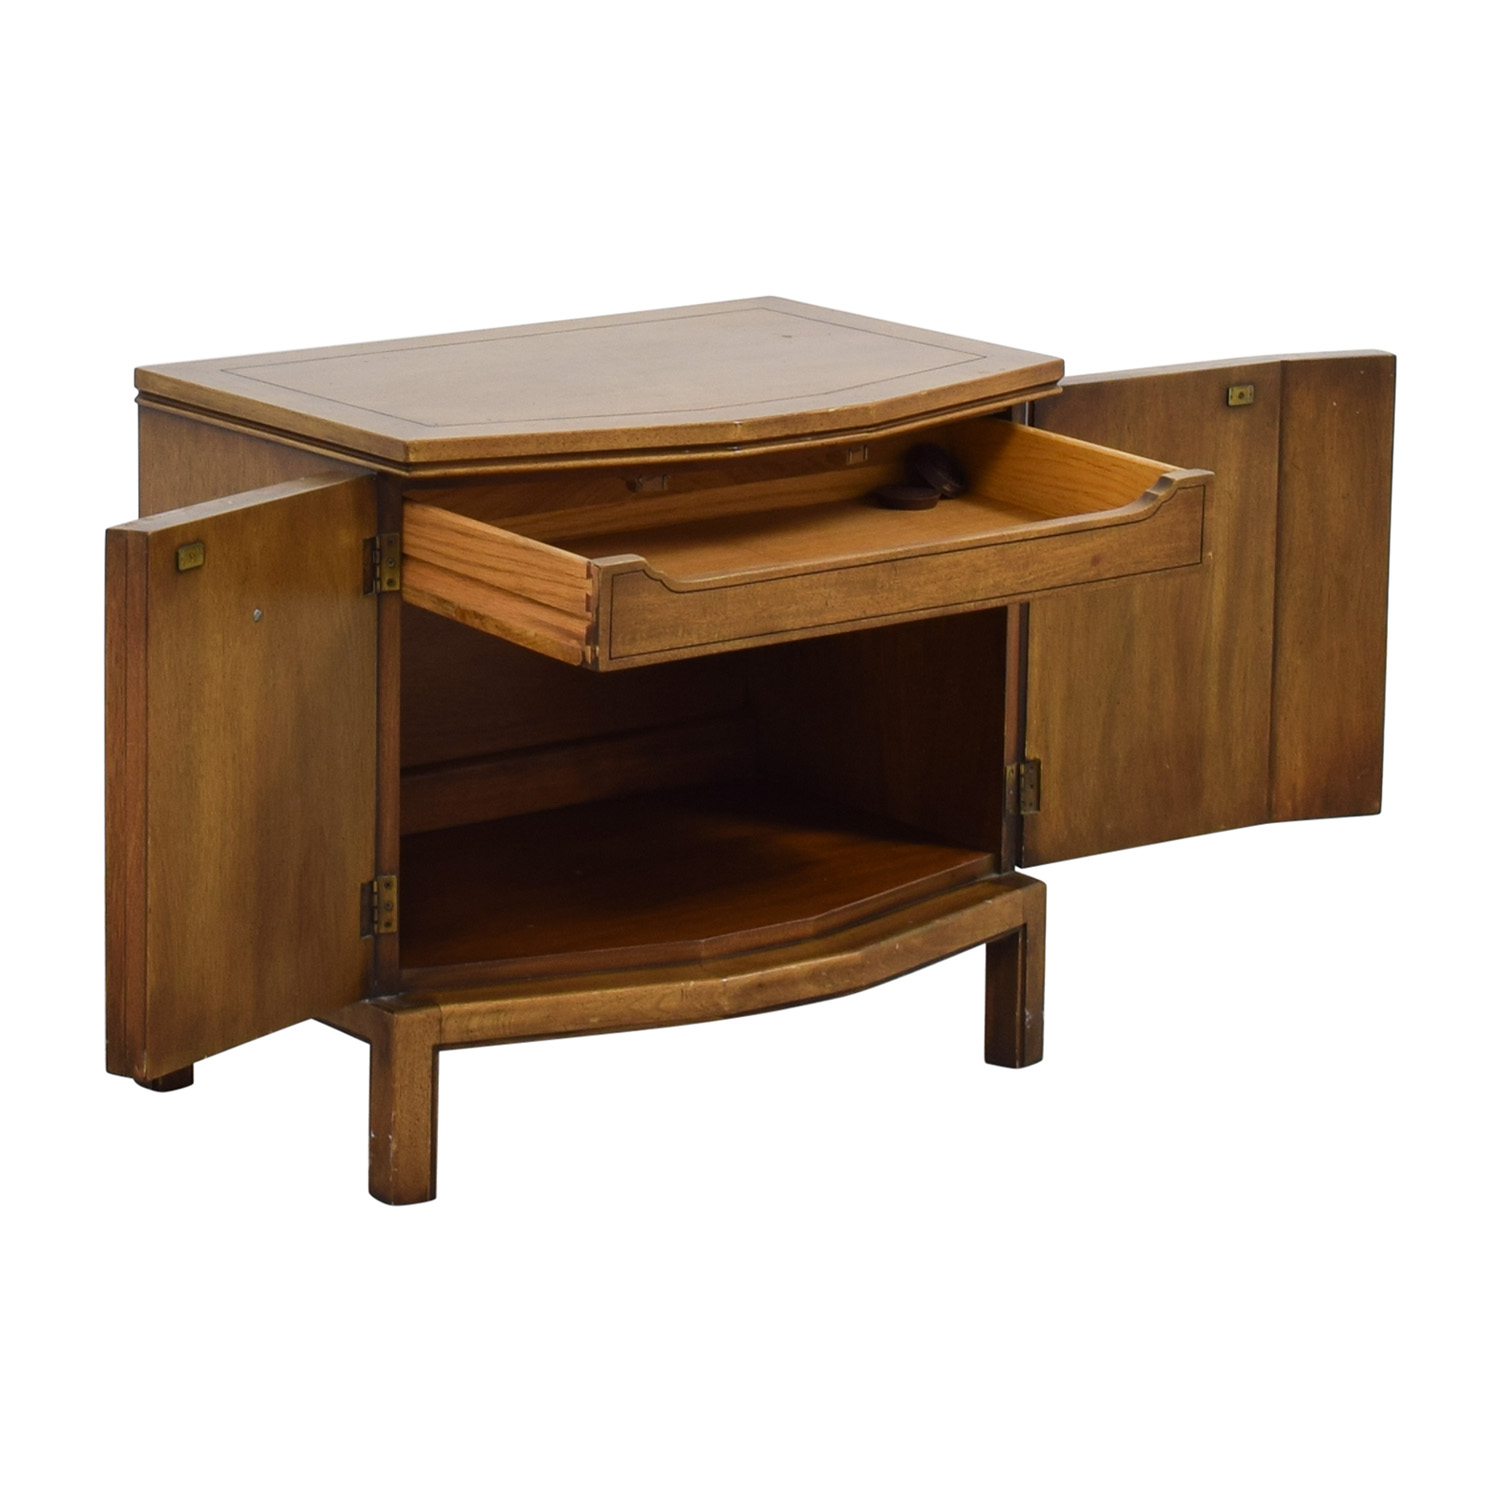 Romweber Romweber Nightstand with Storage for sale